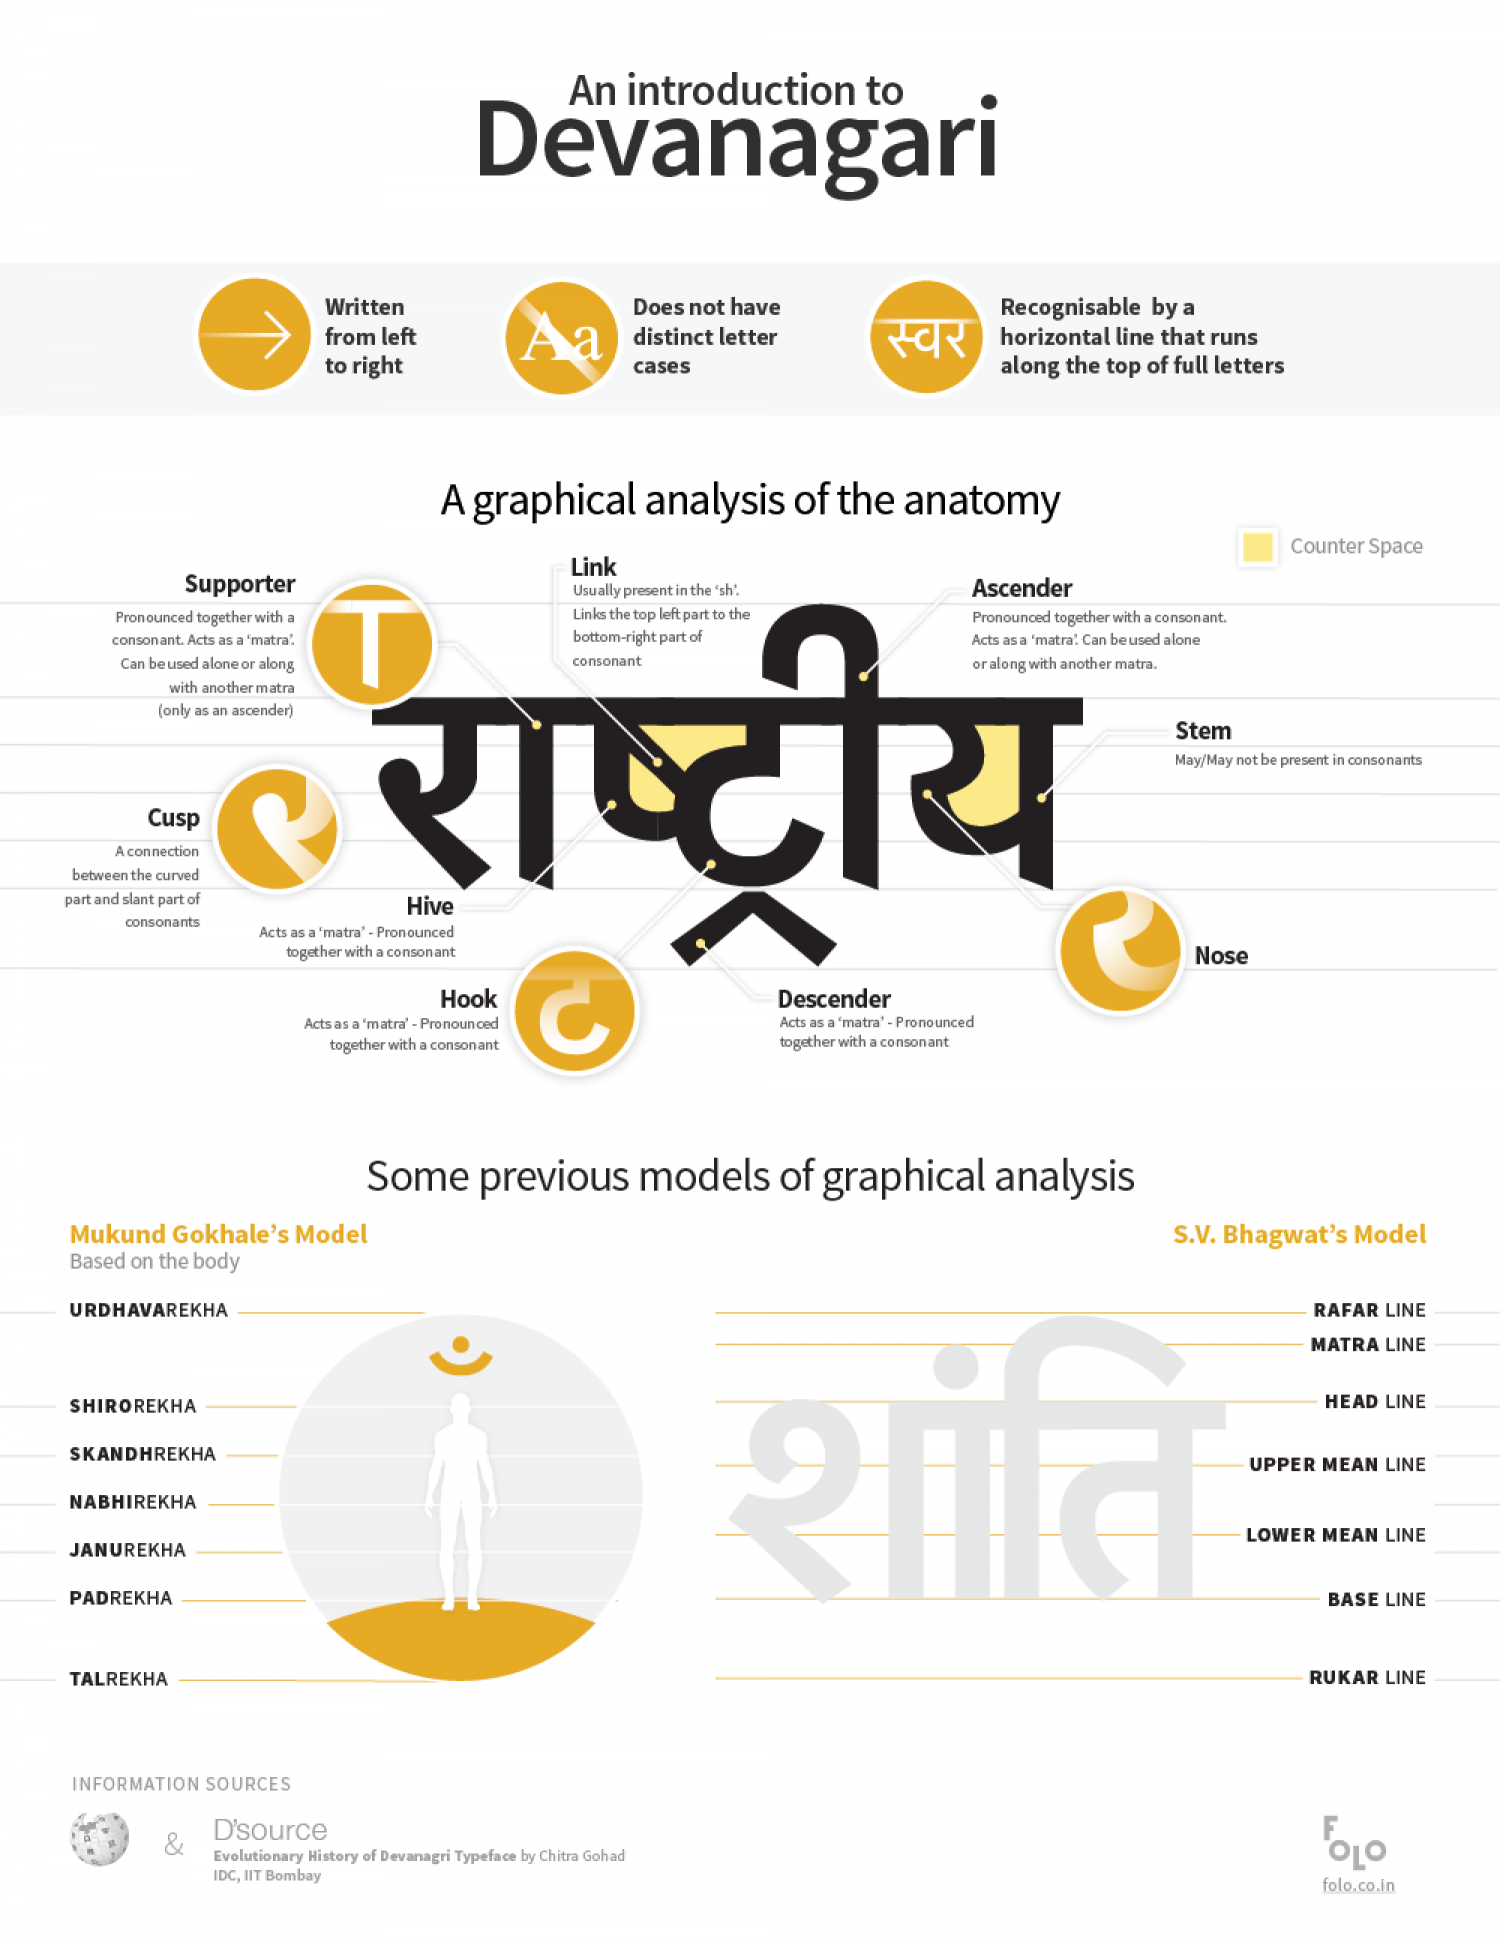 The Anatomy of Devanagari | Visual.ly